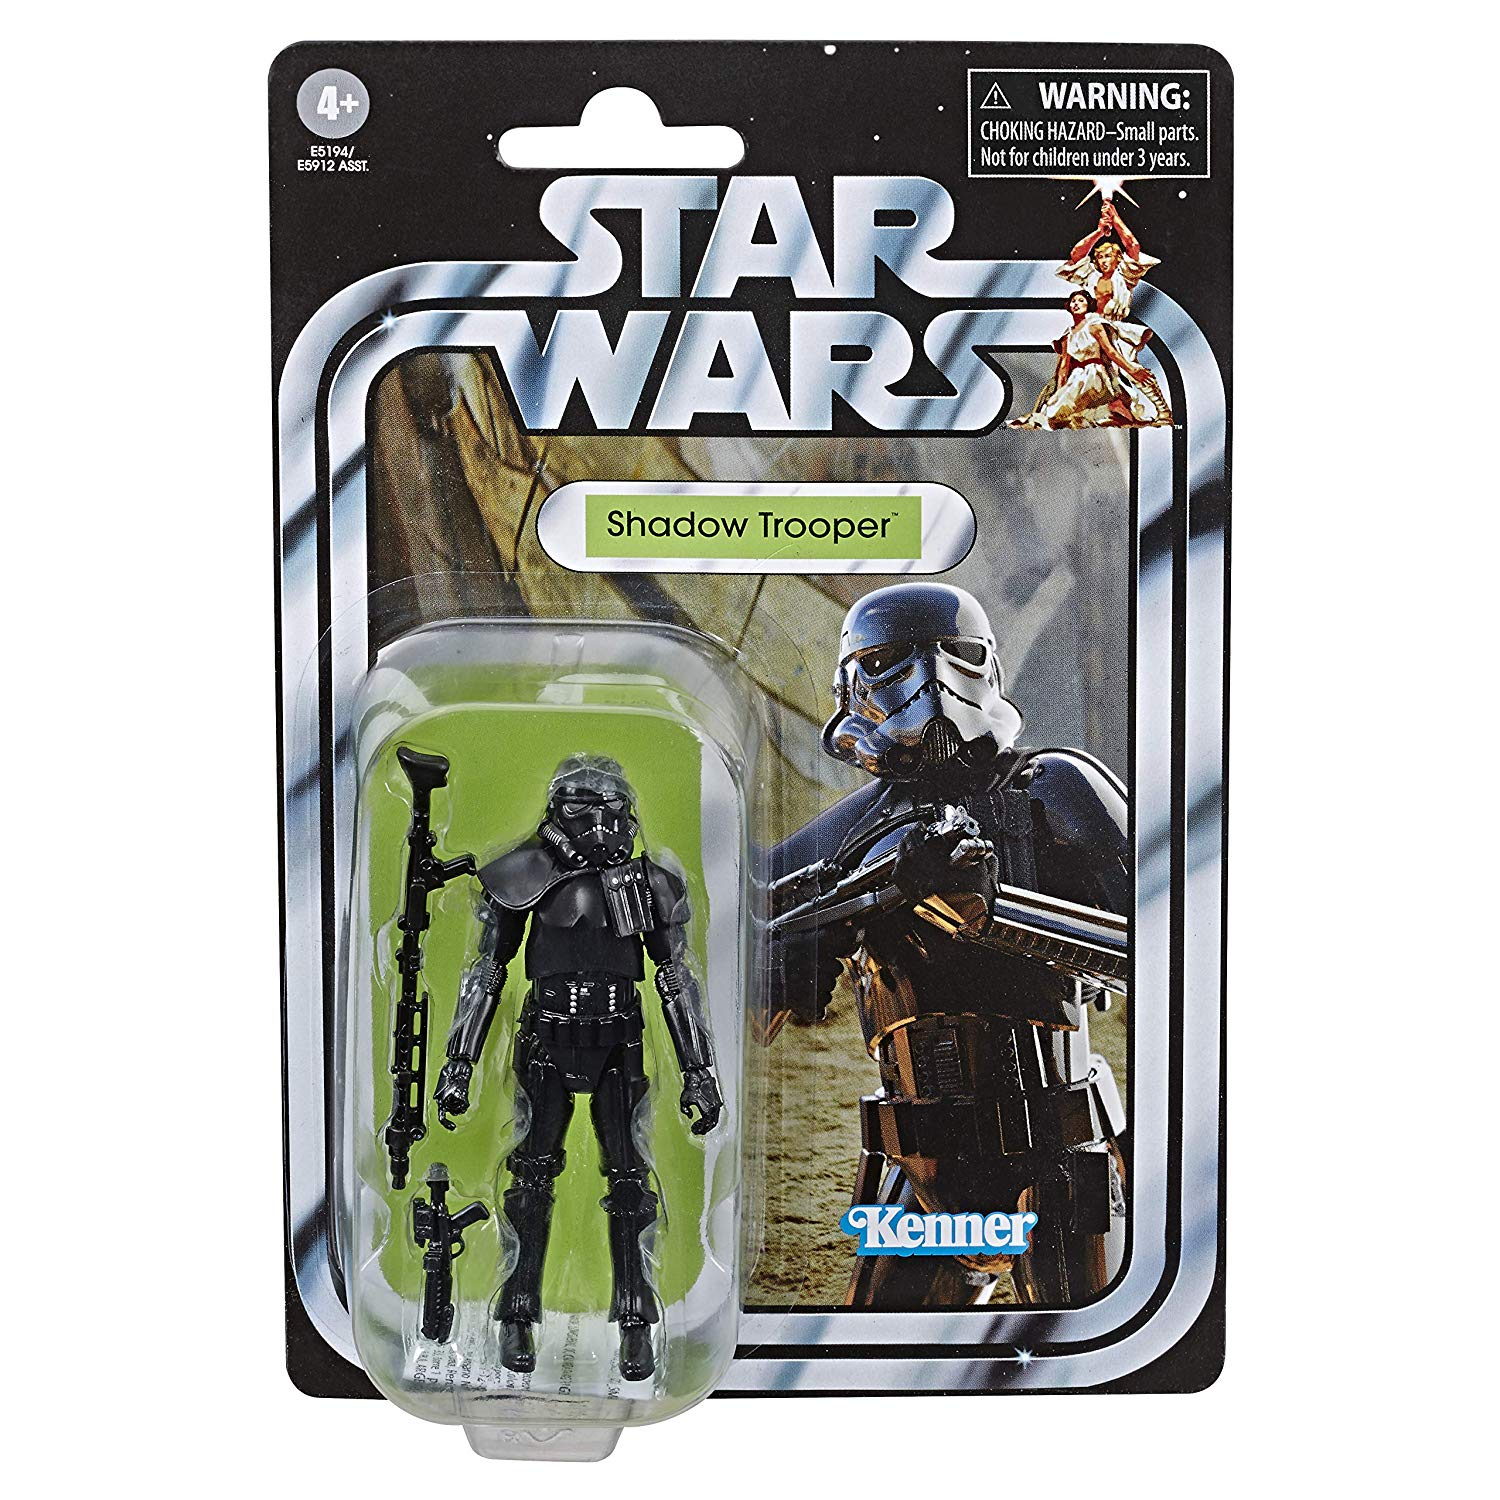 """91T7IVpD2oL. SL1500 - Star Wars The Vintage Collection Shadow Trooper Toy, 3.75"""" Scale Action Figure, Toys for Kids Ages 4 & Up"""